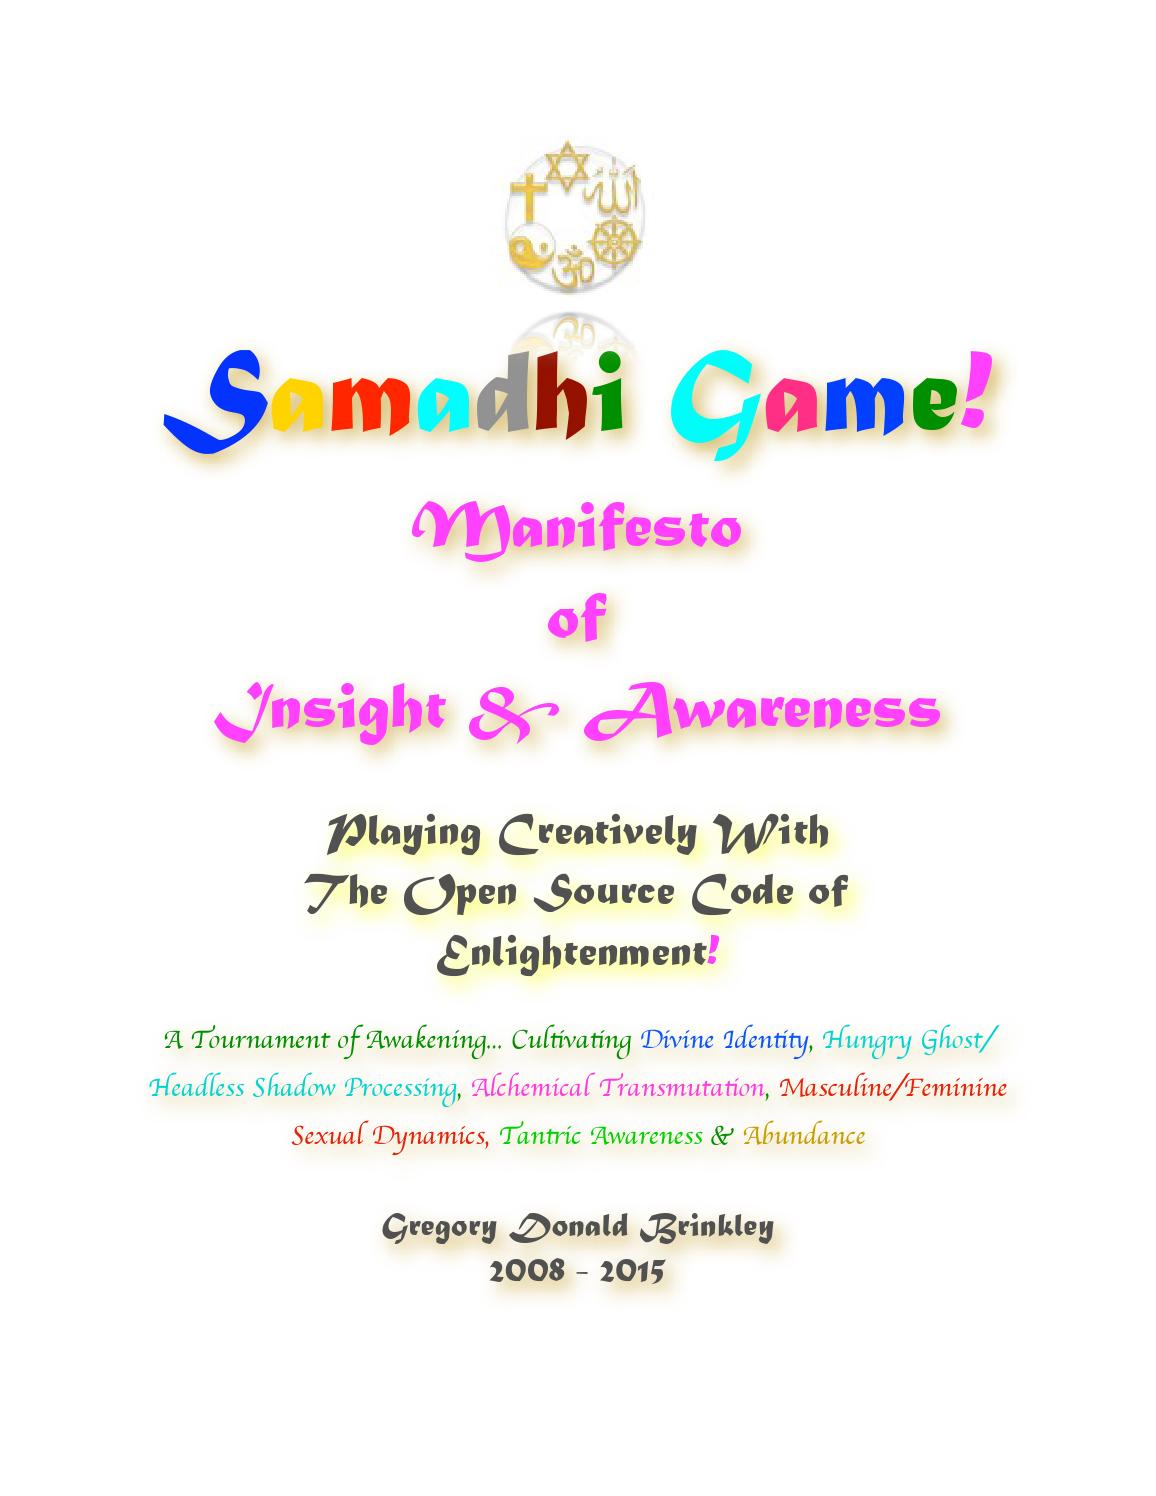 Samadhi game manifesto of insight awareness by gregory manifesto of insight awareness by gregory brinkley issuu geenschuldenfo Images